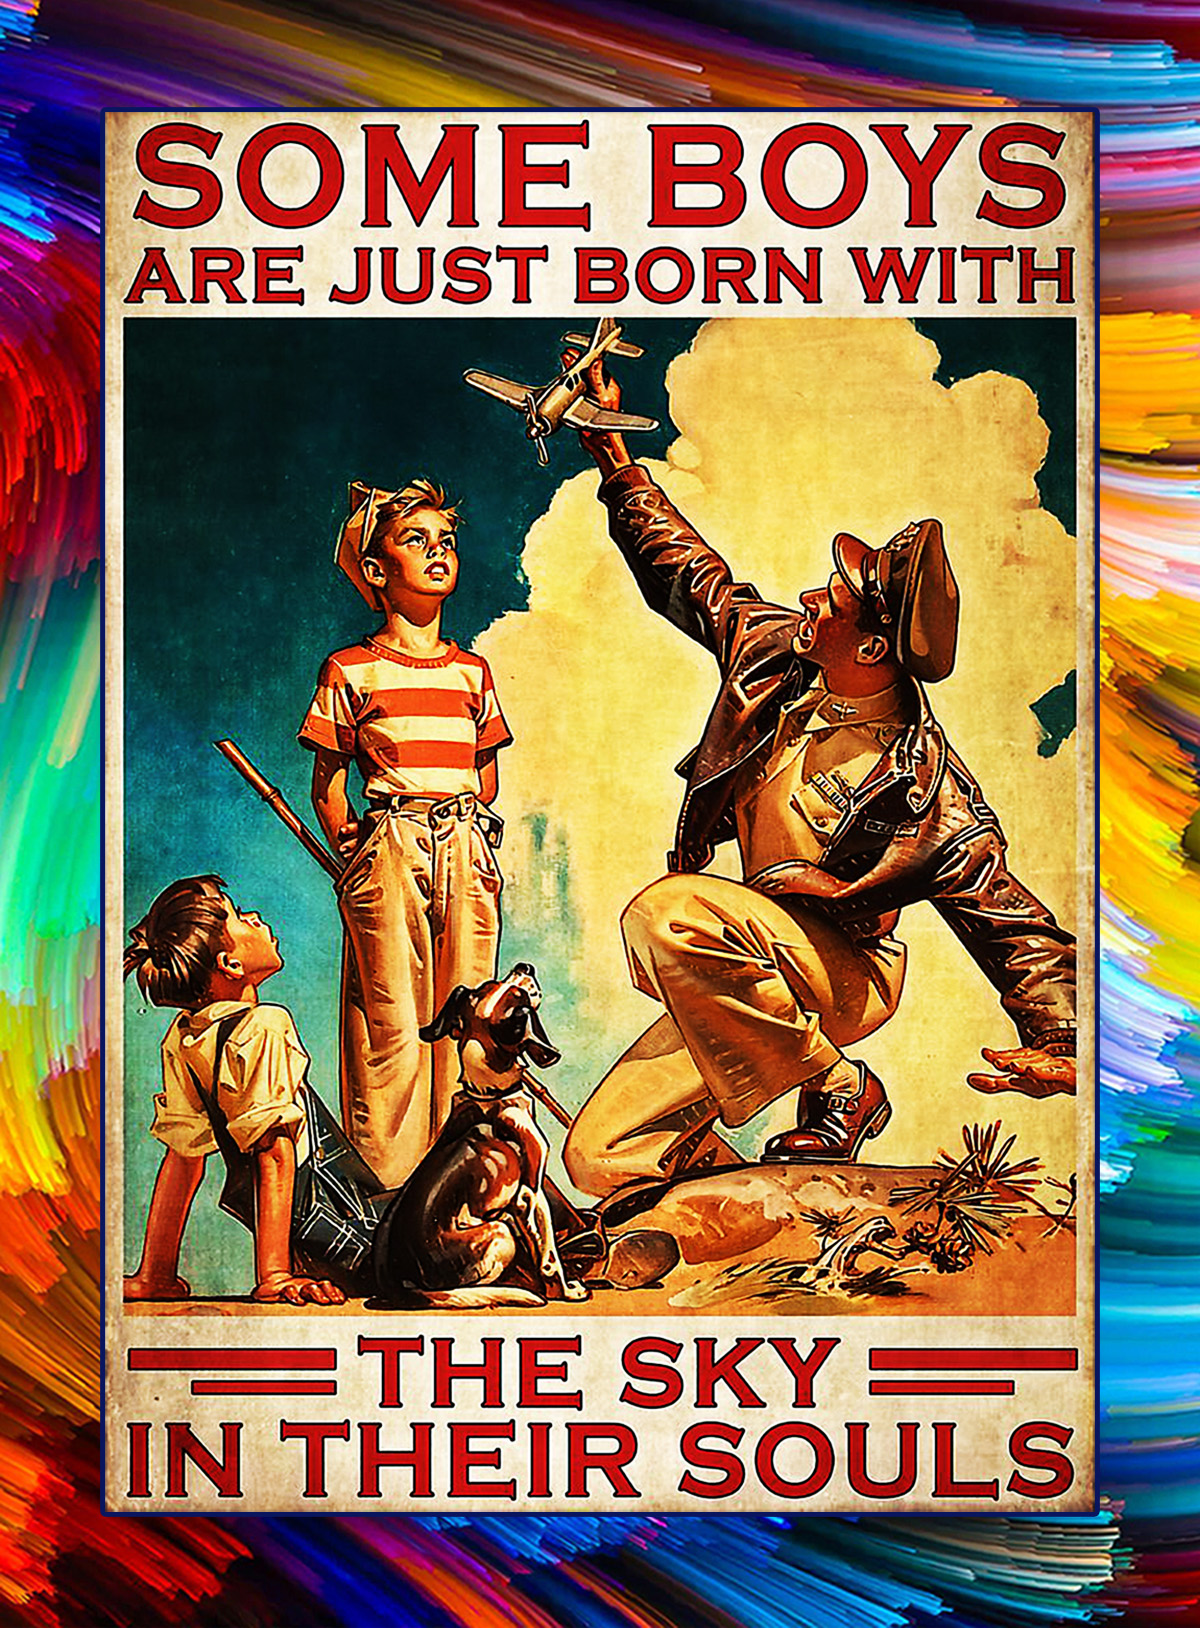 SOME BOYS ARE JUST BORN WITH THE SKY IN THEIR SOULS POSTER - A1